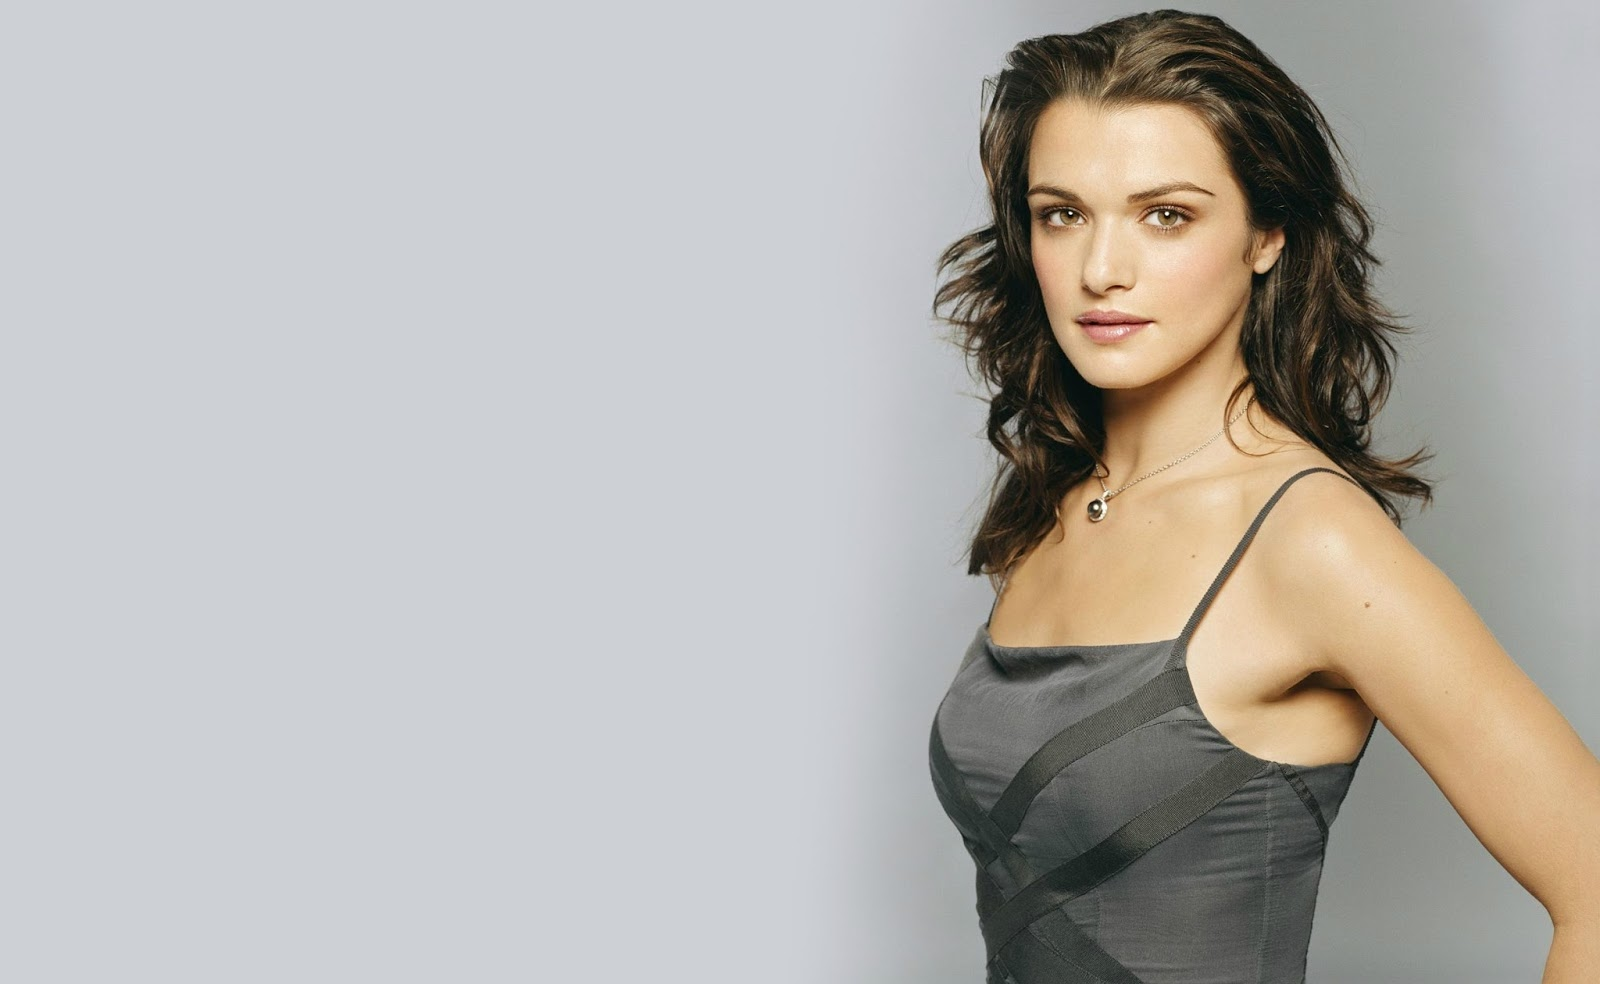 3d King Cobra Snake Wallpaper Rachel Weisz Hd Wallpapers Fog Hd Wallpaper